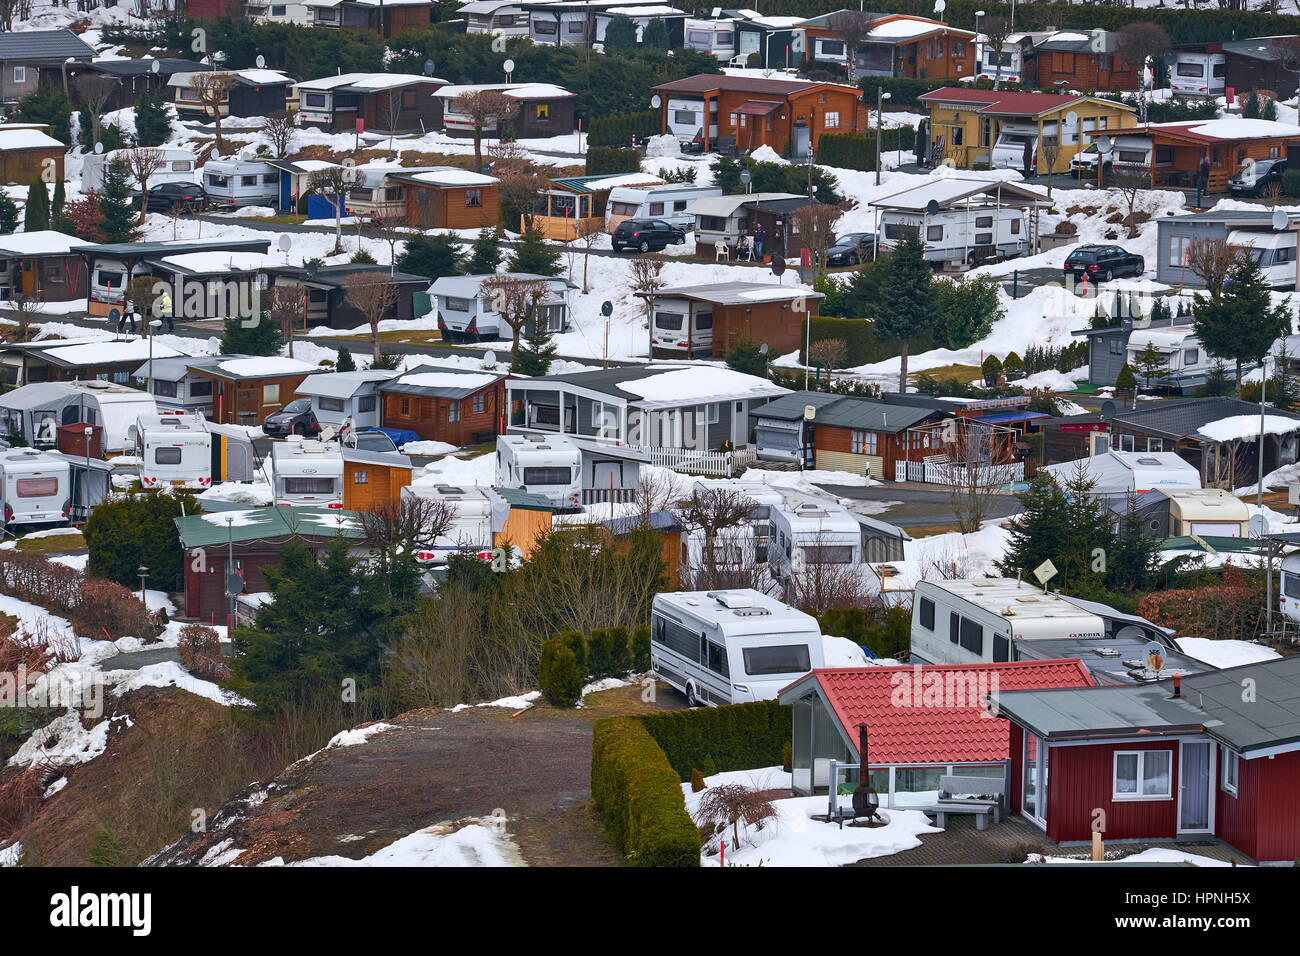 WINTERBERG, GERMANY - FEBRUARY 16, 2017: Aerial view of a snow covered trailer park at Ski Carousel Winterberg Stock Photo